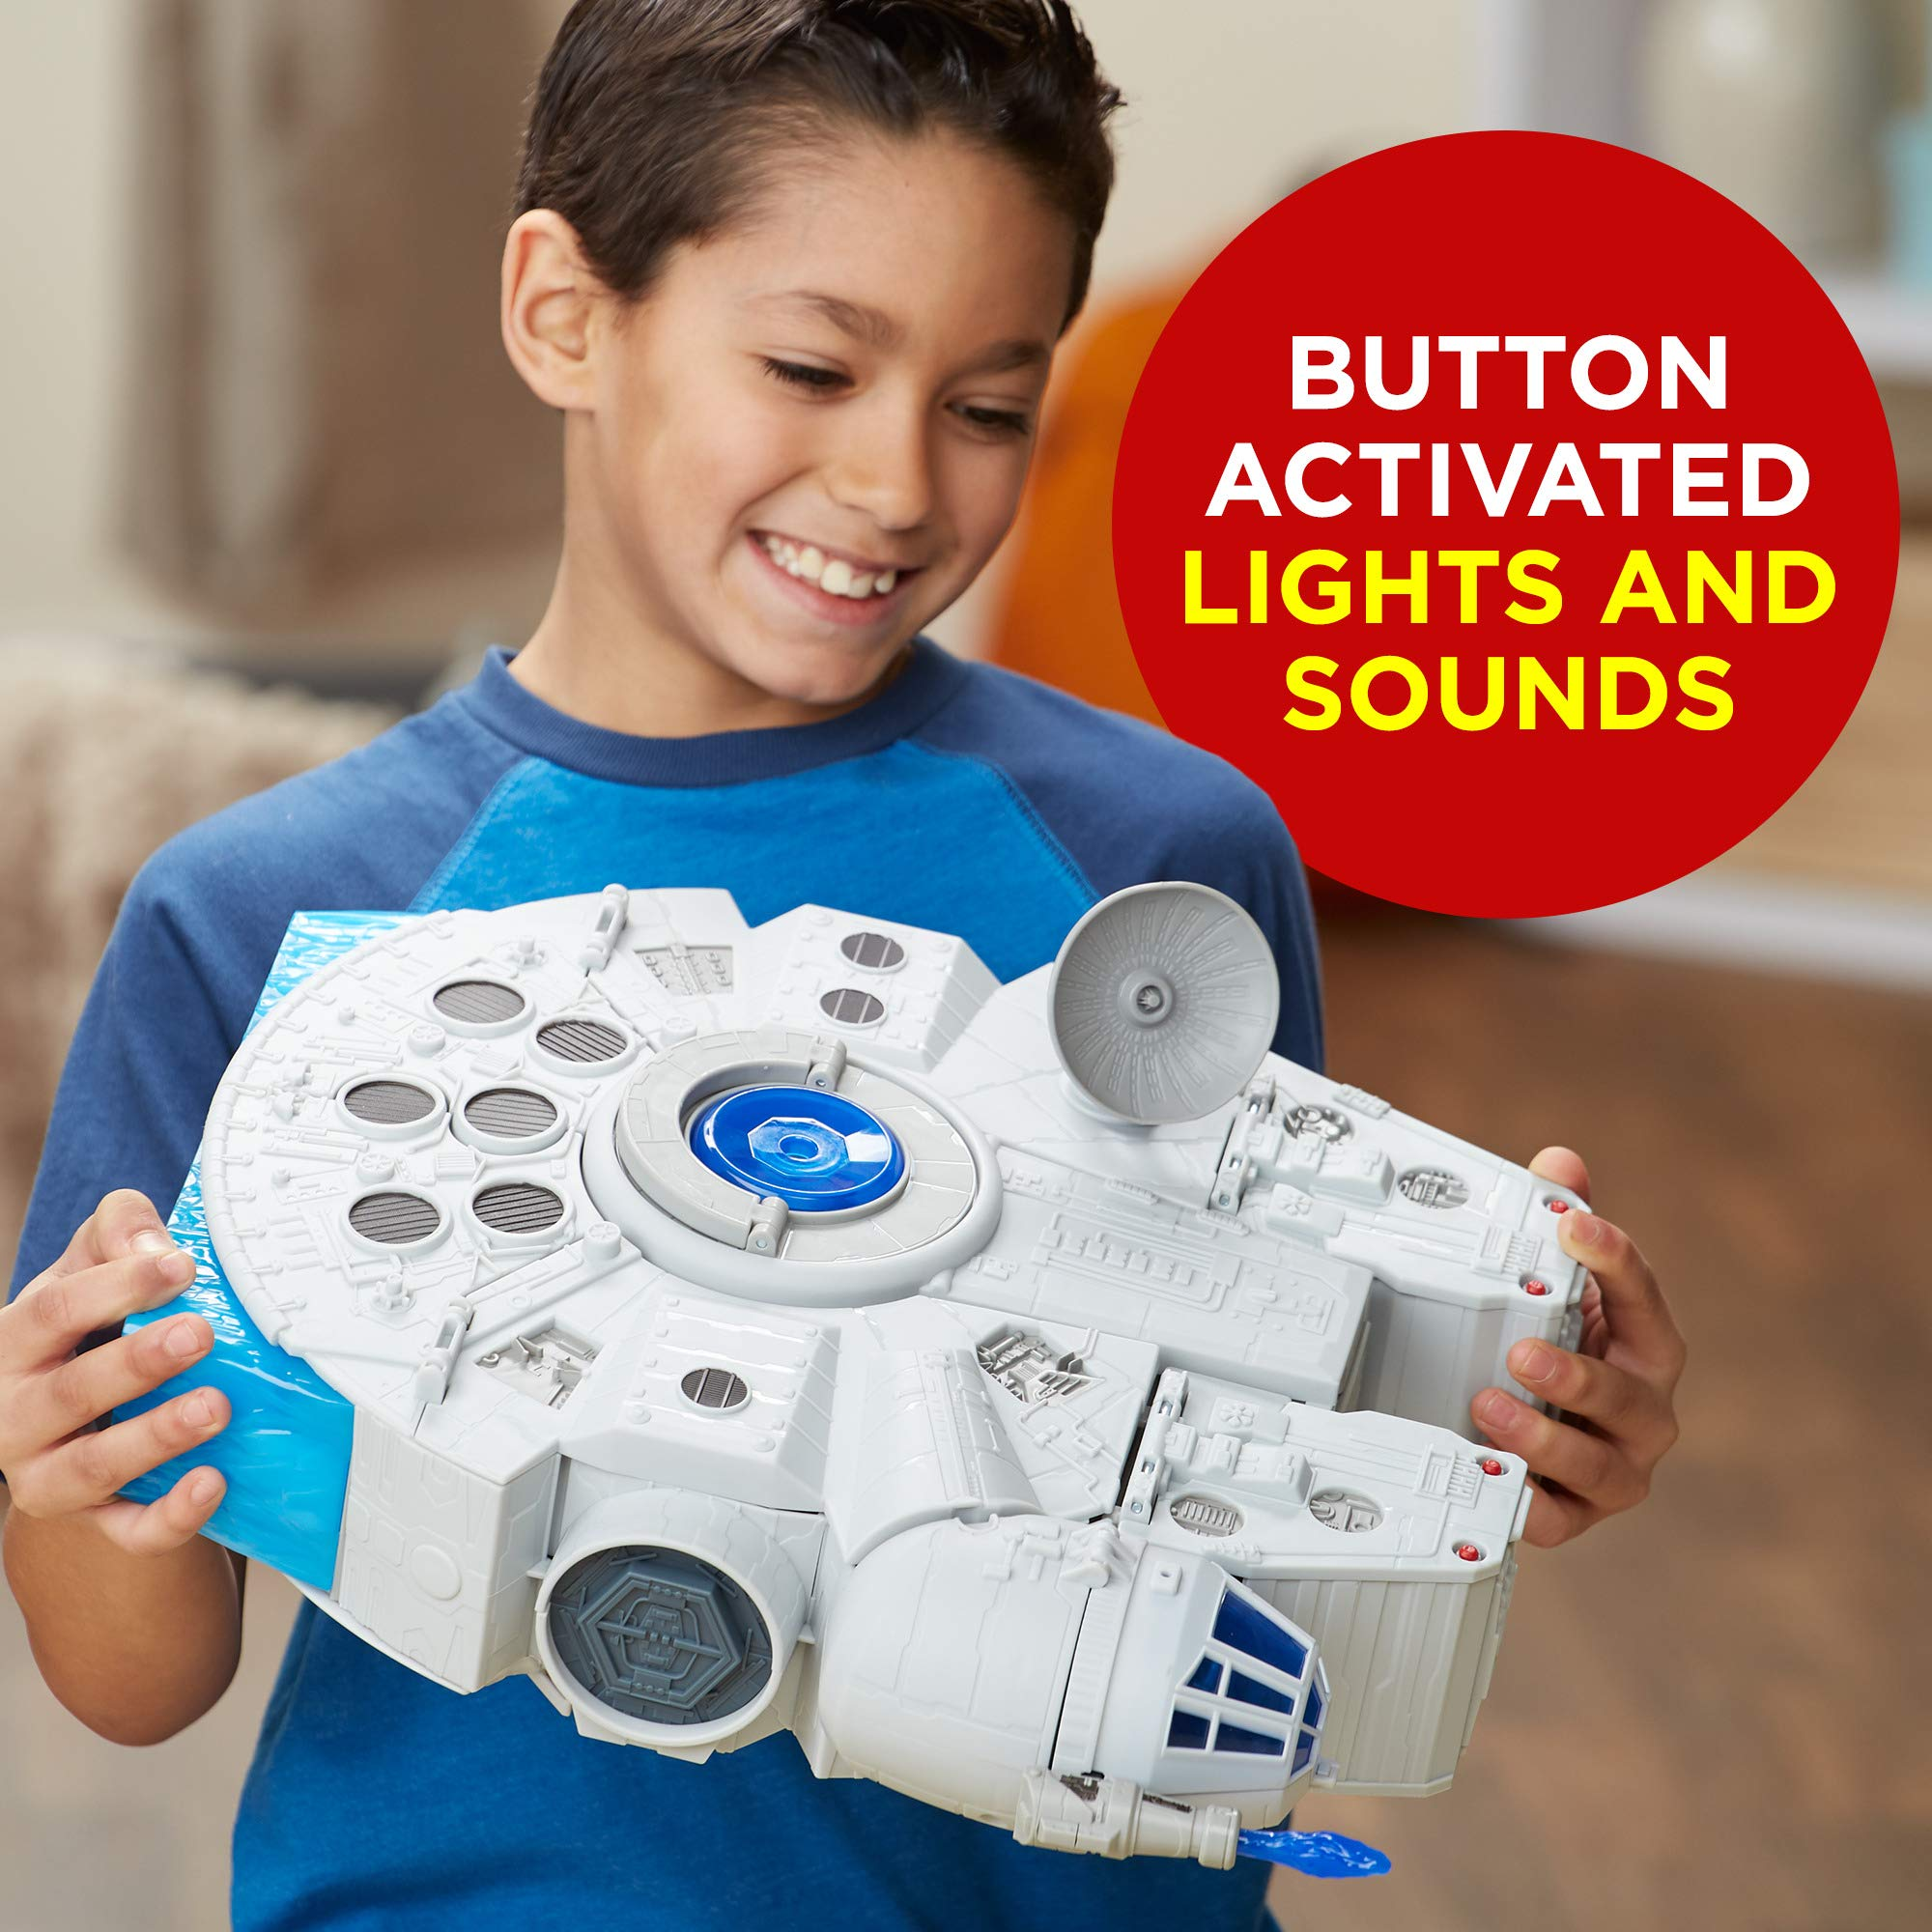 Star Wars Galactic Heroes 2-In-1 Millennium Falcon Vehicle Playset, Chewbacca, R2-D2 2.5-Inch Action Figures, Lights and Sounds, Toys for Kids Ages 3 and Up by Playskool (Image #5)